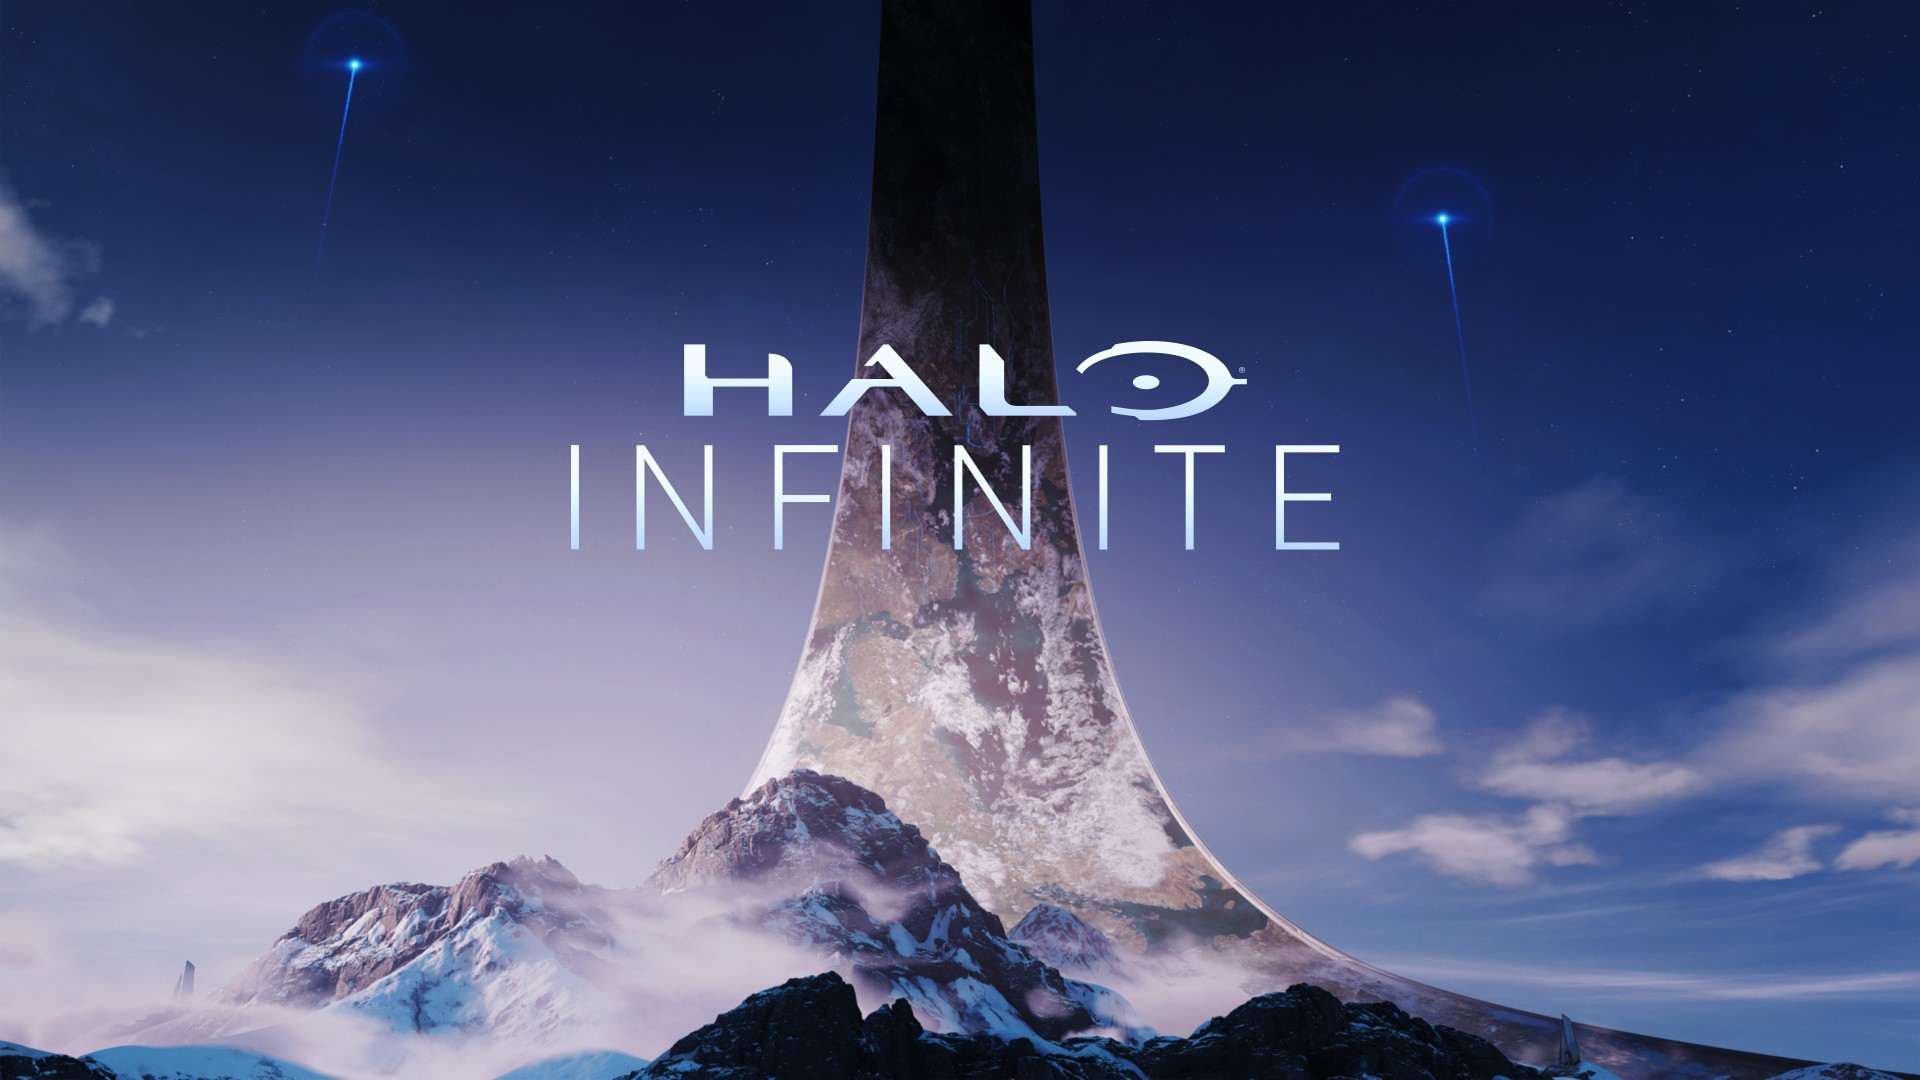 Anime Wallpaper For Ipad Halo Infinite E3 2018 4k Wallpapers Hd Wallpapers Id